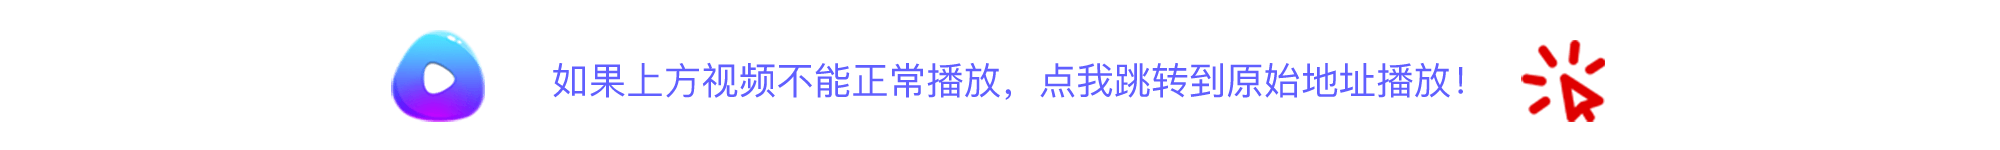 FCPX插件 78个呼出指示线条文字标题介绍注释展示动画 Call Out Titles Elements